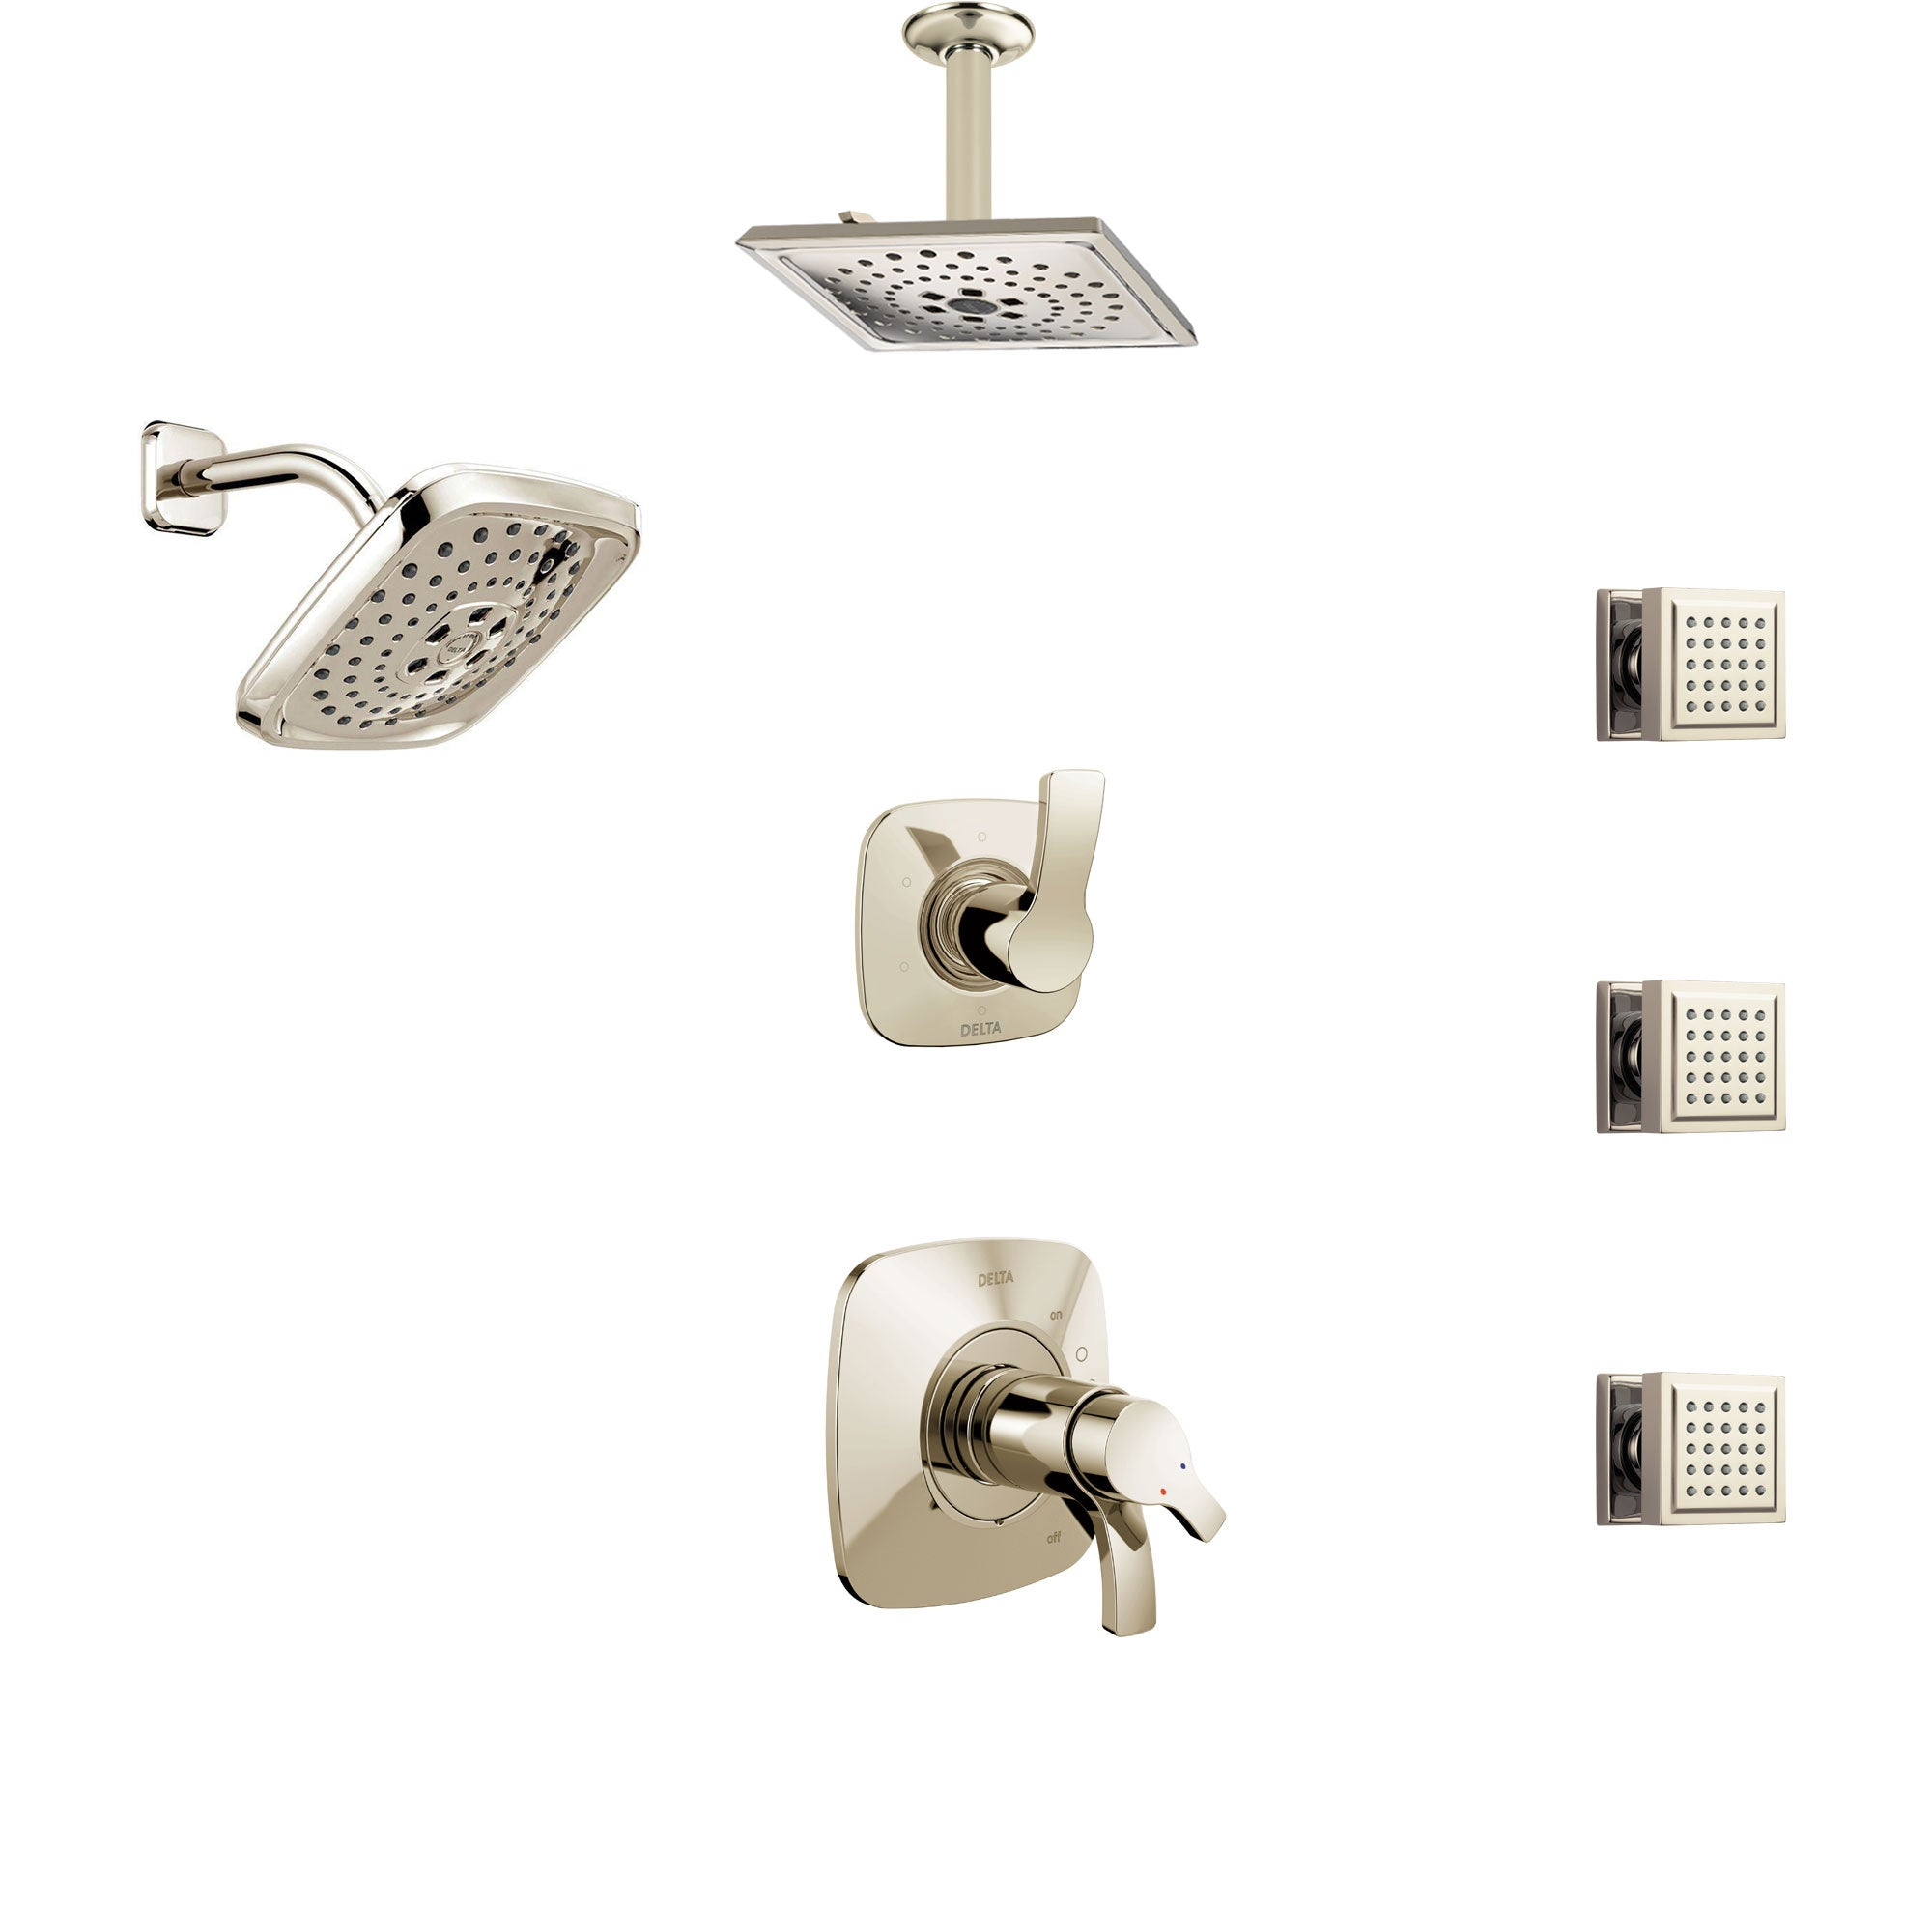 Delta Tesla Polished Nickel Shower System with Dual Thermostatic Control, Diverter, Showerhead, Ceiling Showerhead, and 3 Body Sprays SS17T2521PN4